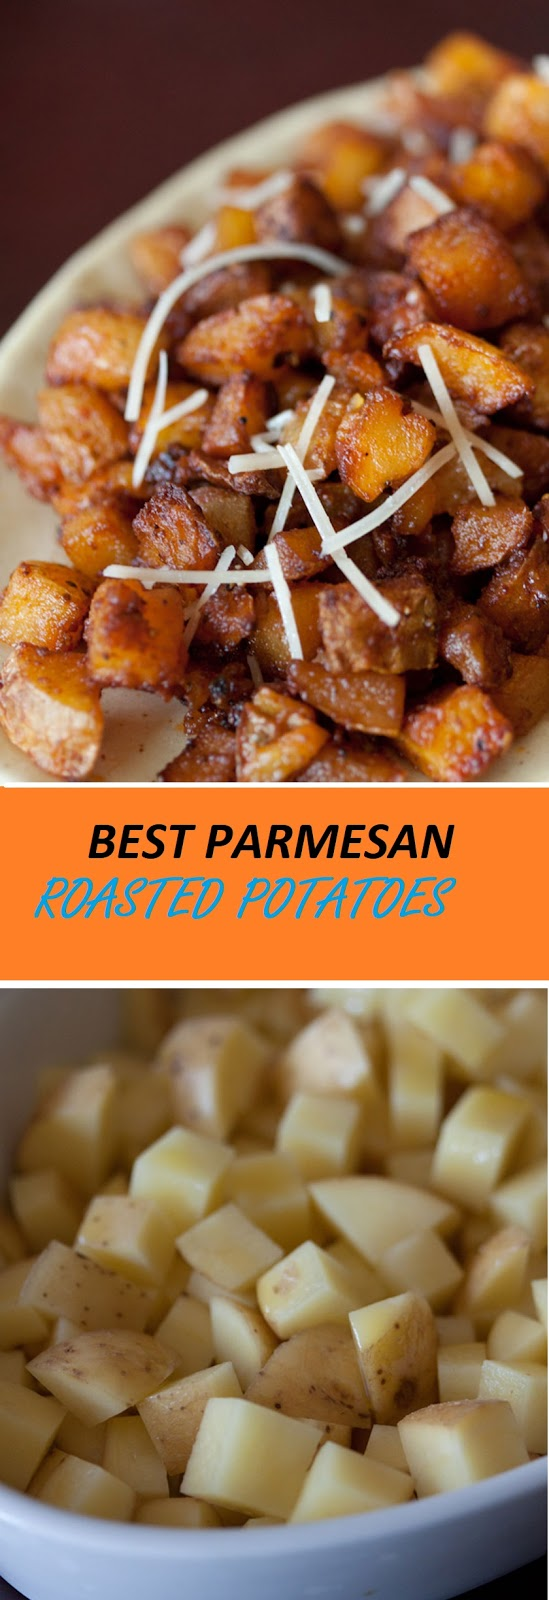 BEST PARMESAN ROASTED POTATOES